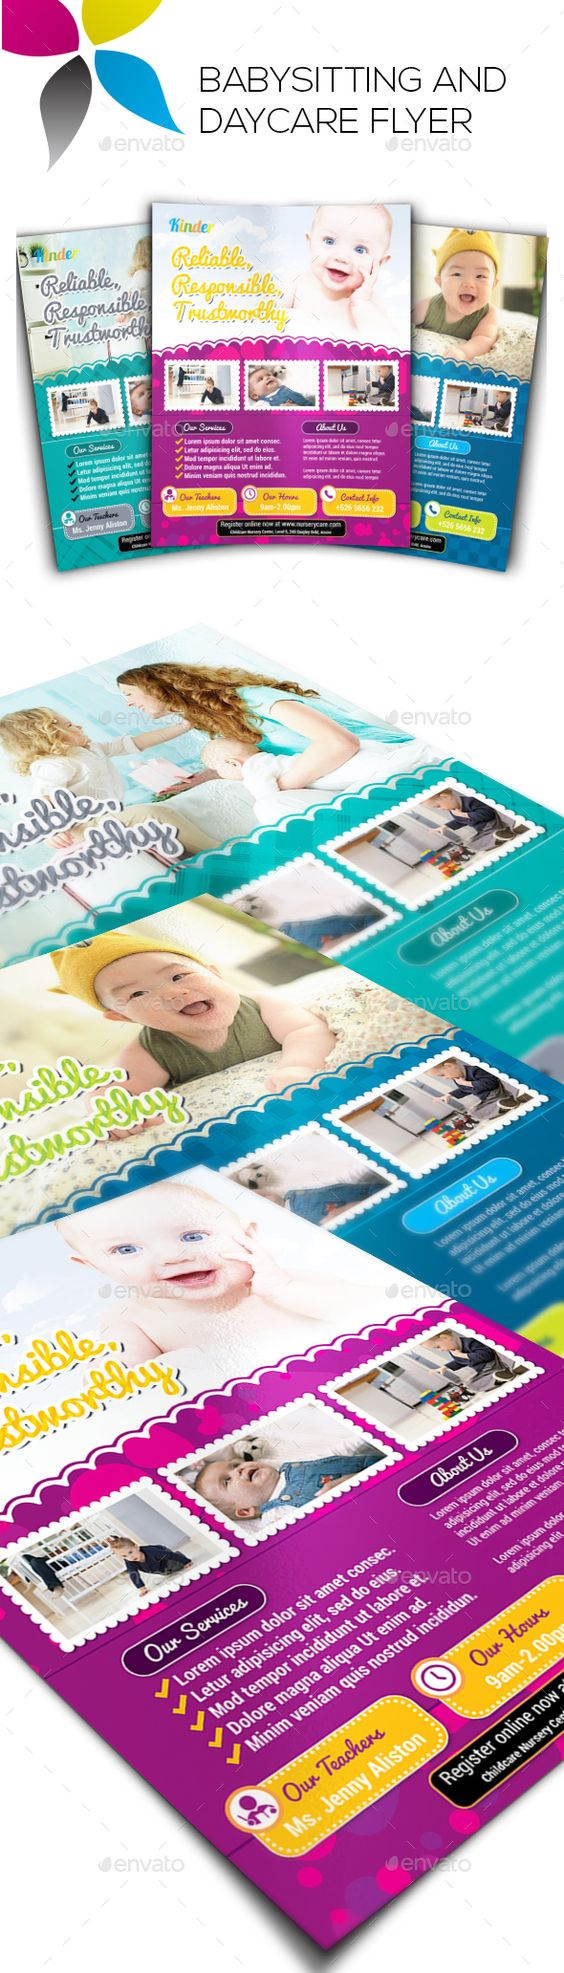 babysitting and daycare flyers flyer design templates flyer babysitting and daycare flyer design template corporate flyer template psd here